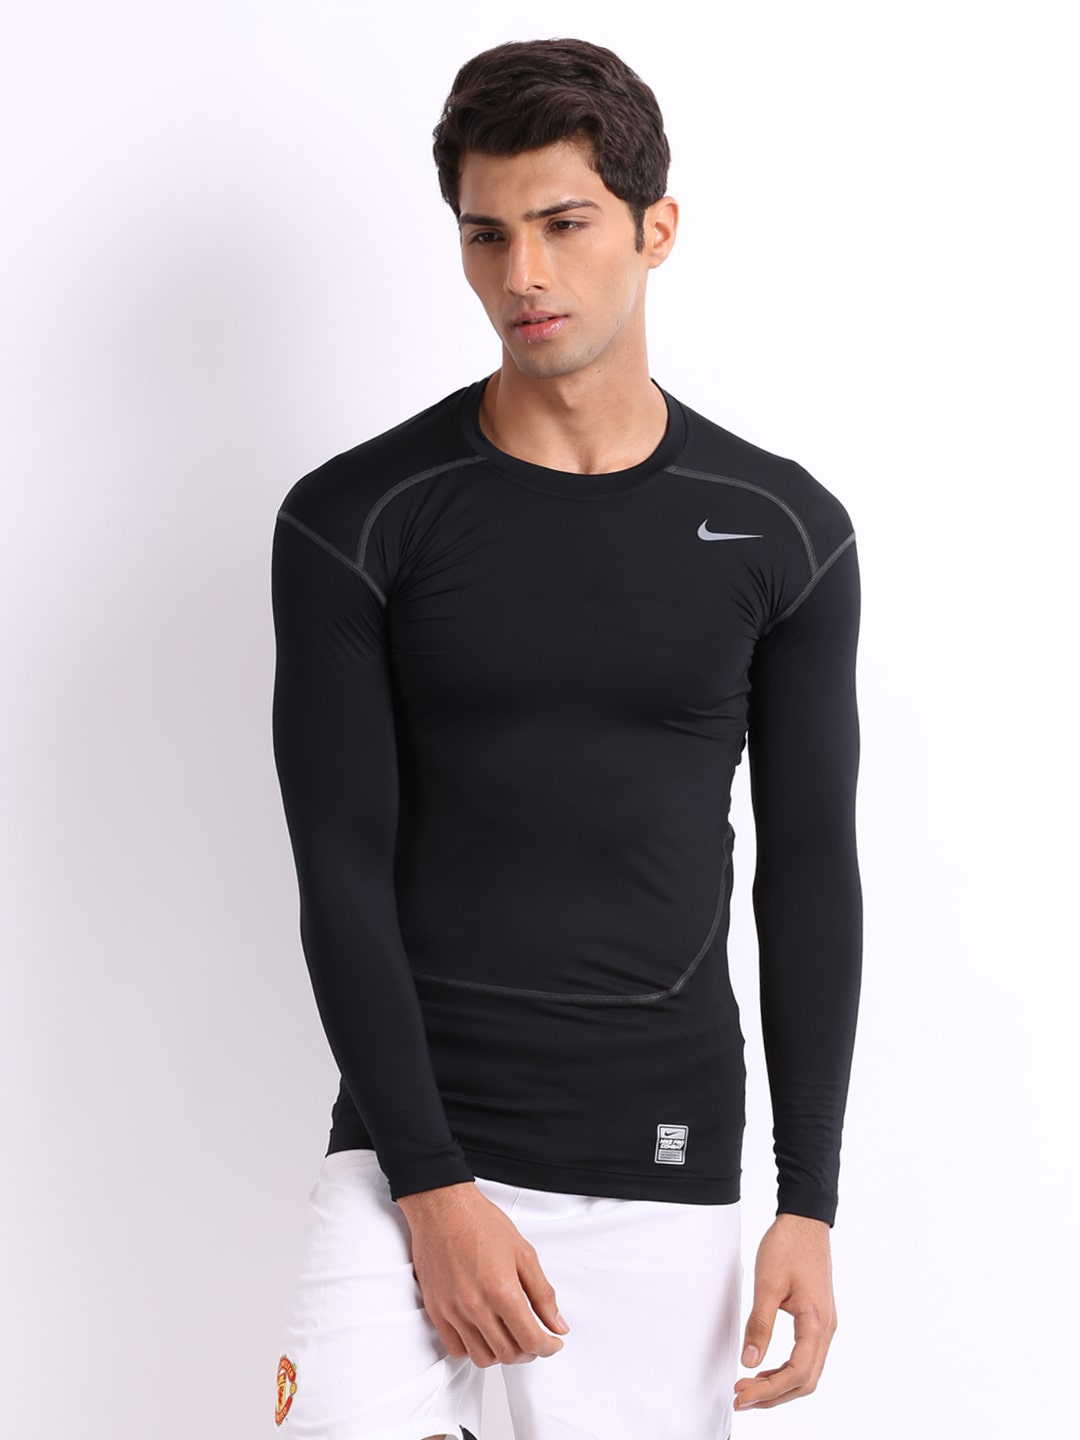 Nike style code 449794 010 for Nike t shirt price